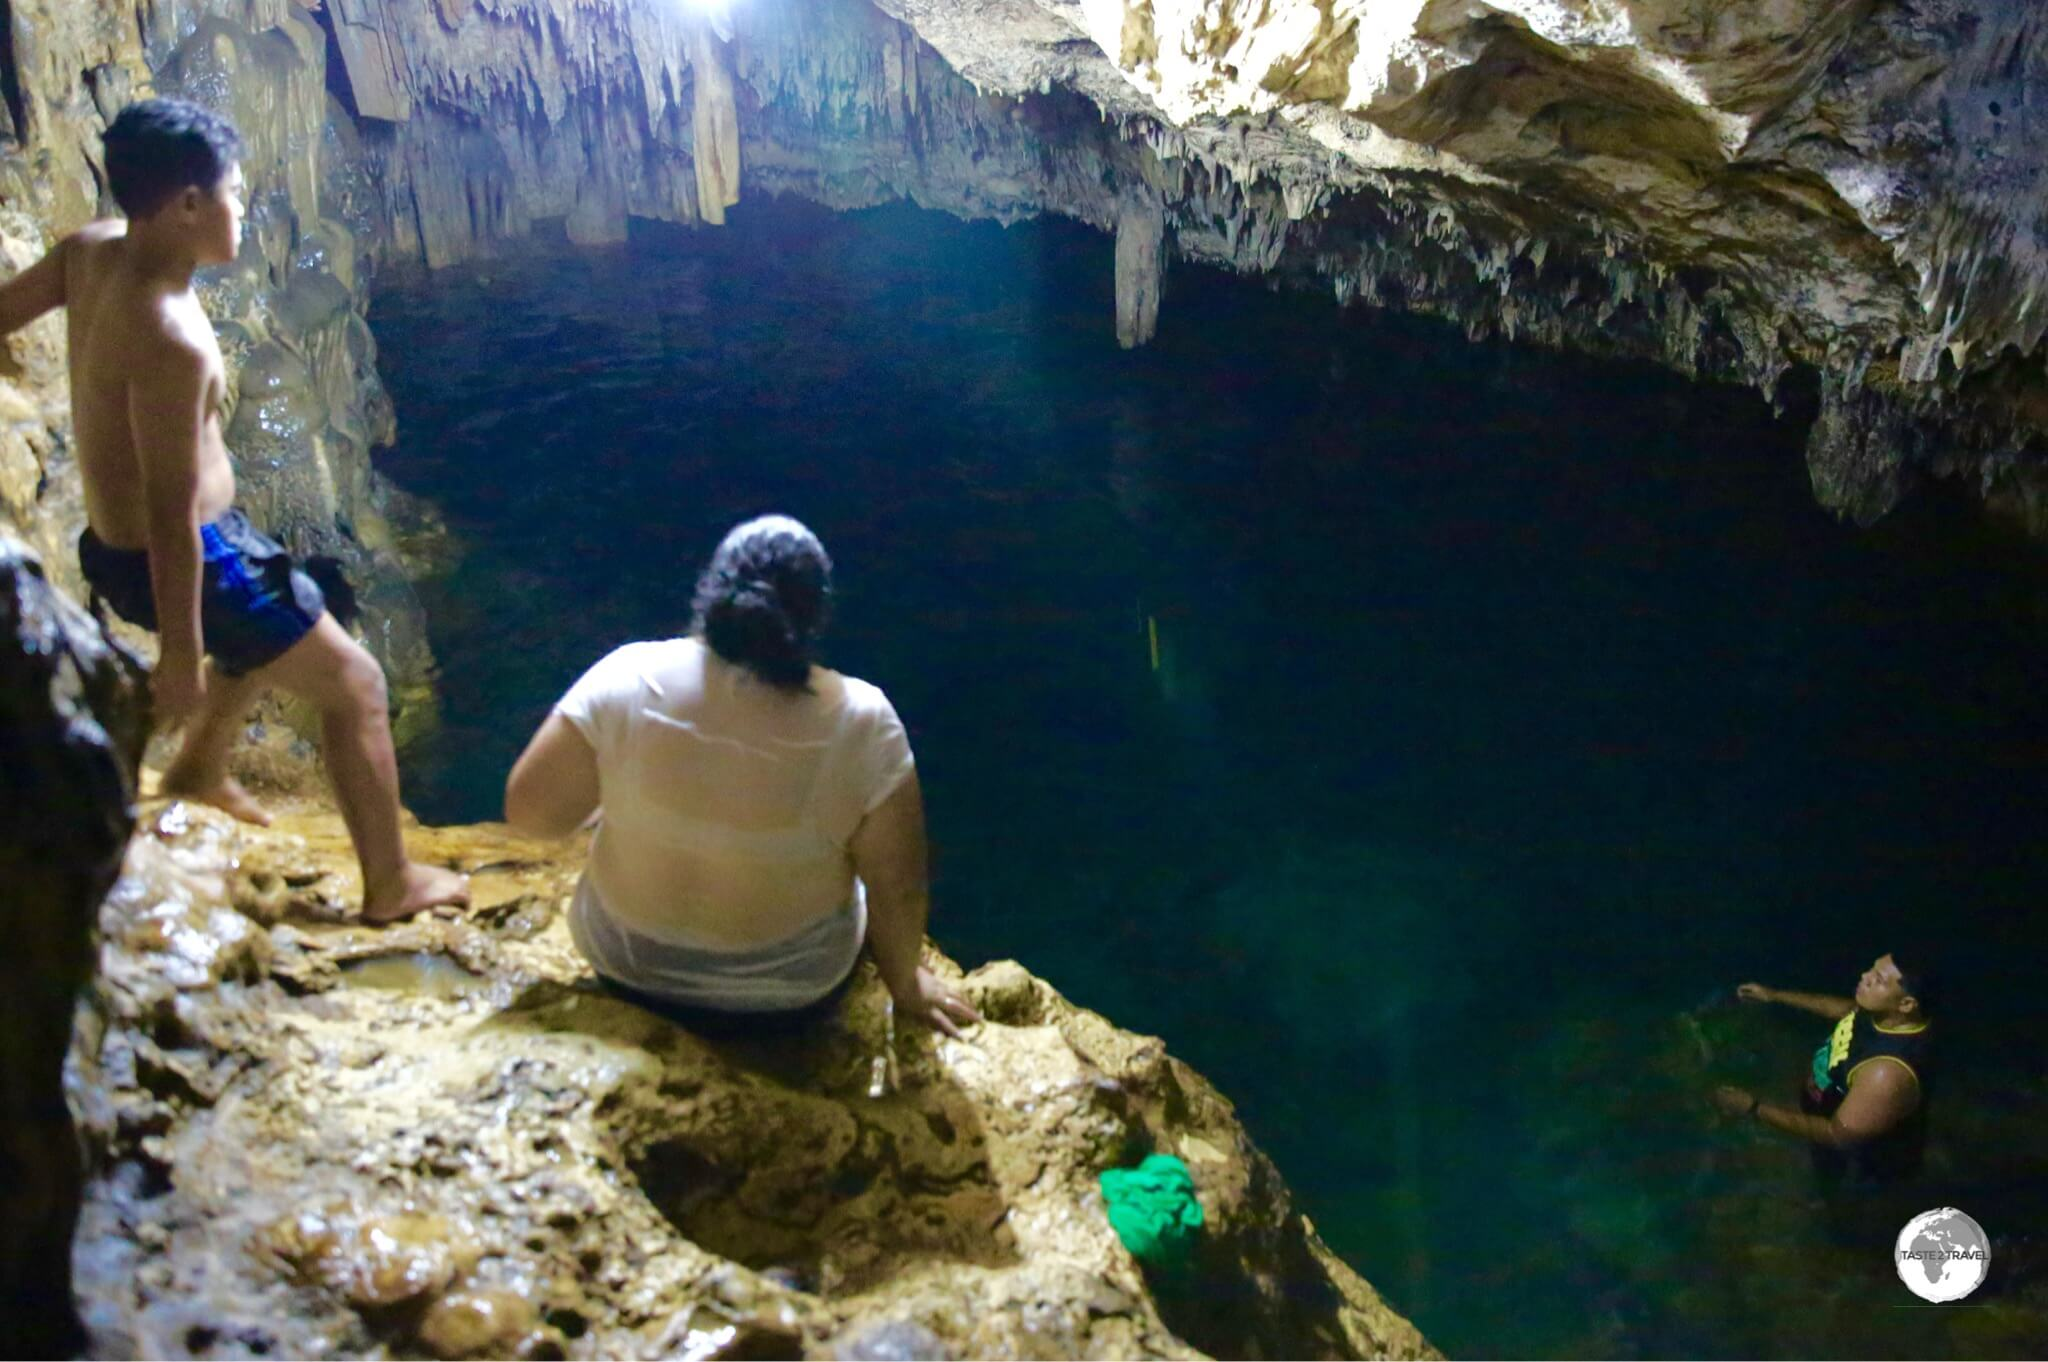 Locals bathing in the deep freshwater pool inside 'Anahulu Cave.